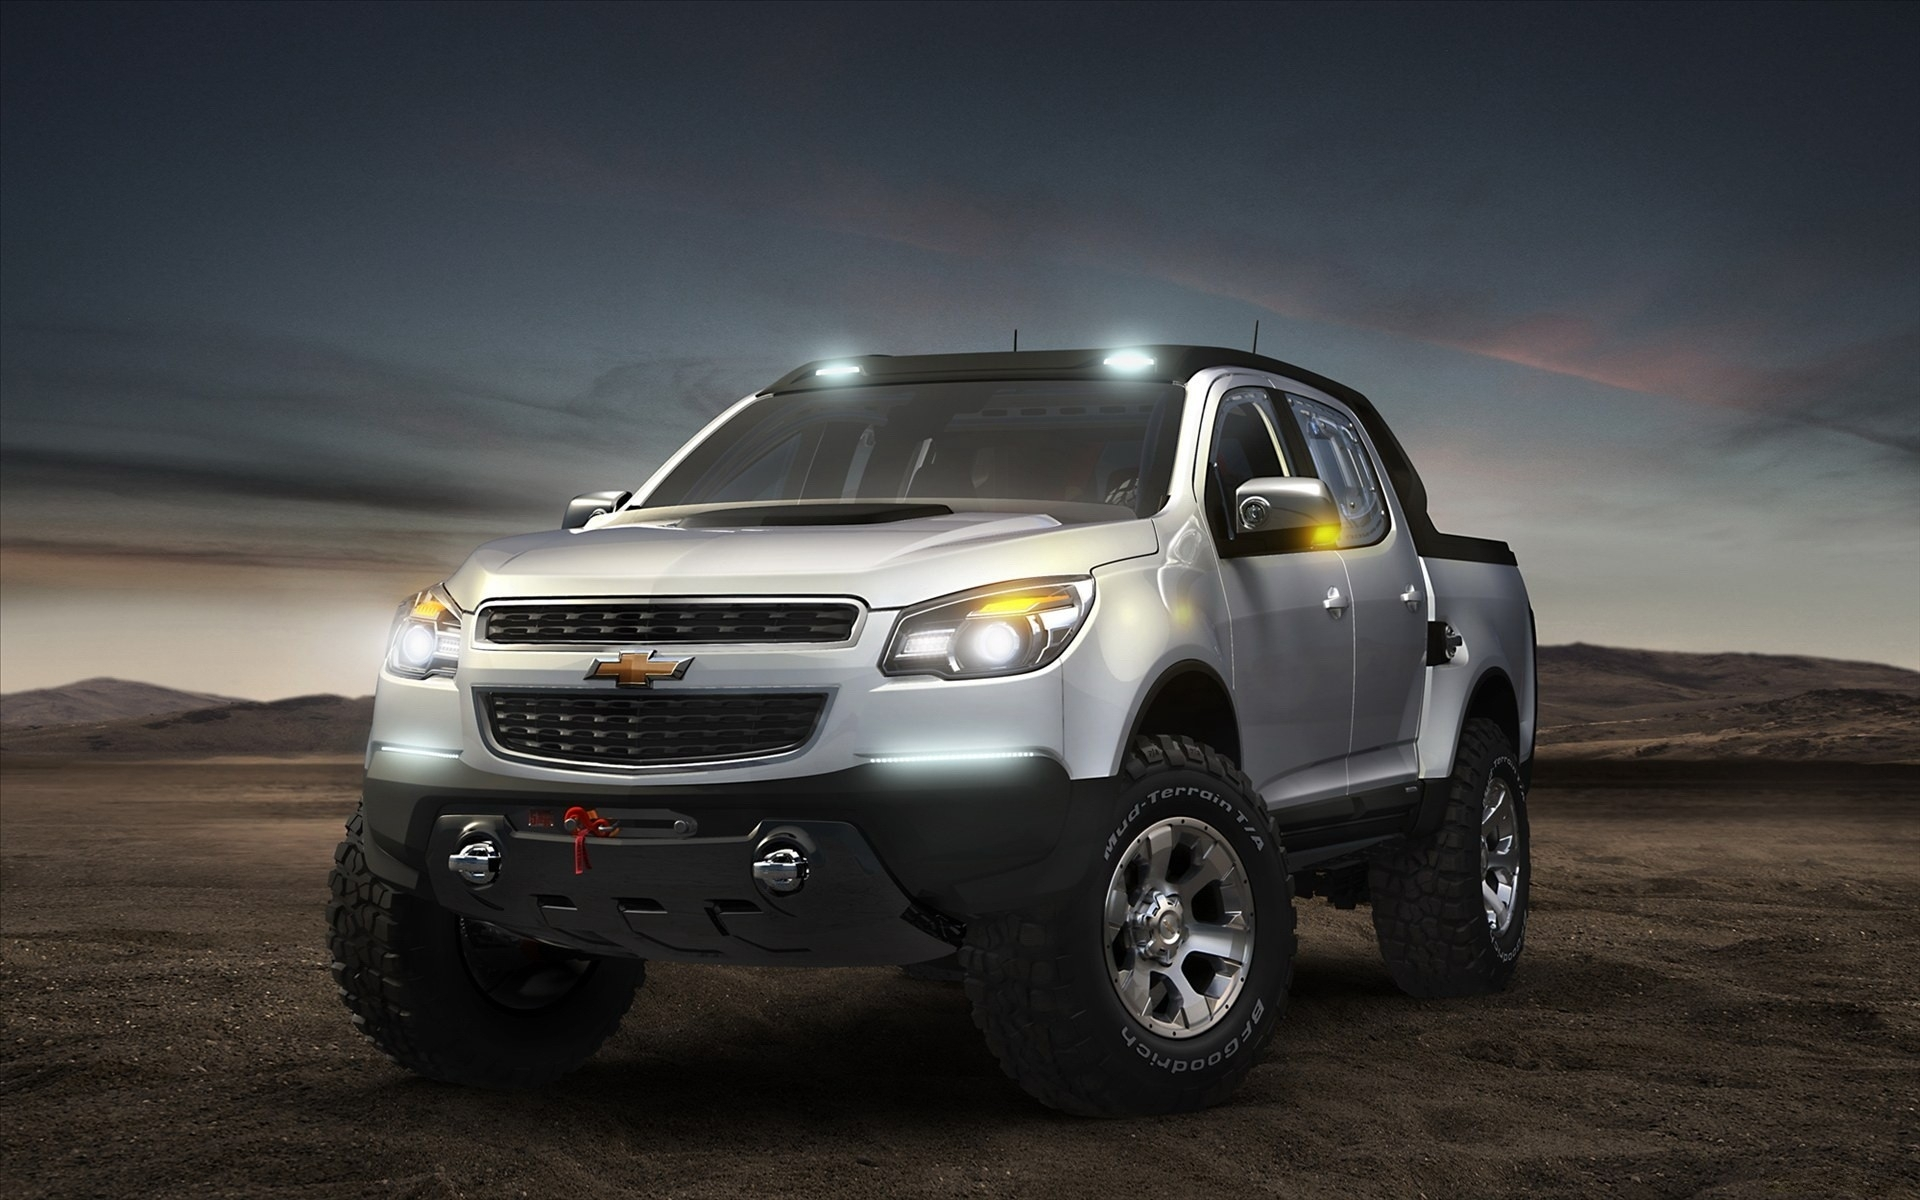 pickup trucks 4x4 complex magazine 1920x1200 wallpaper Wallpaper 1920x1200